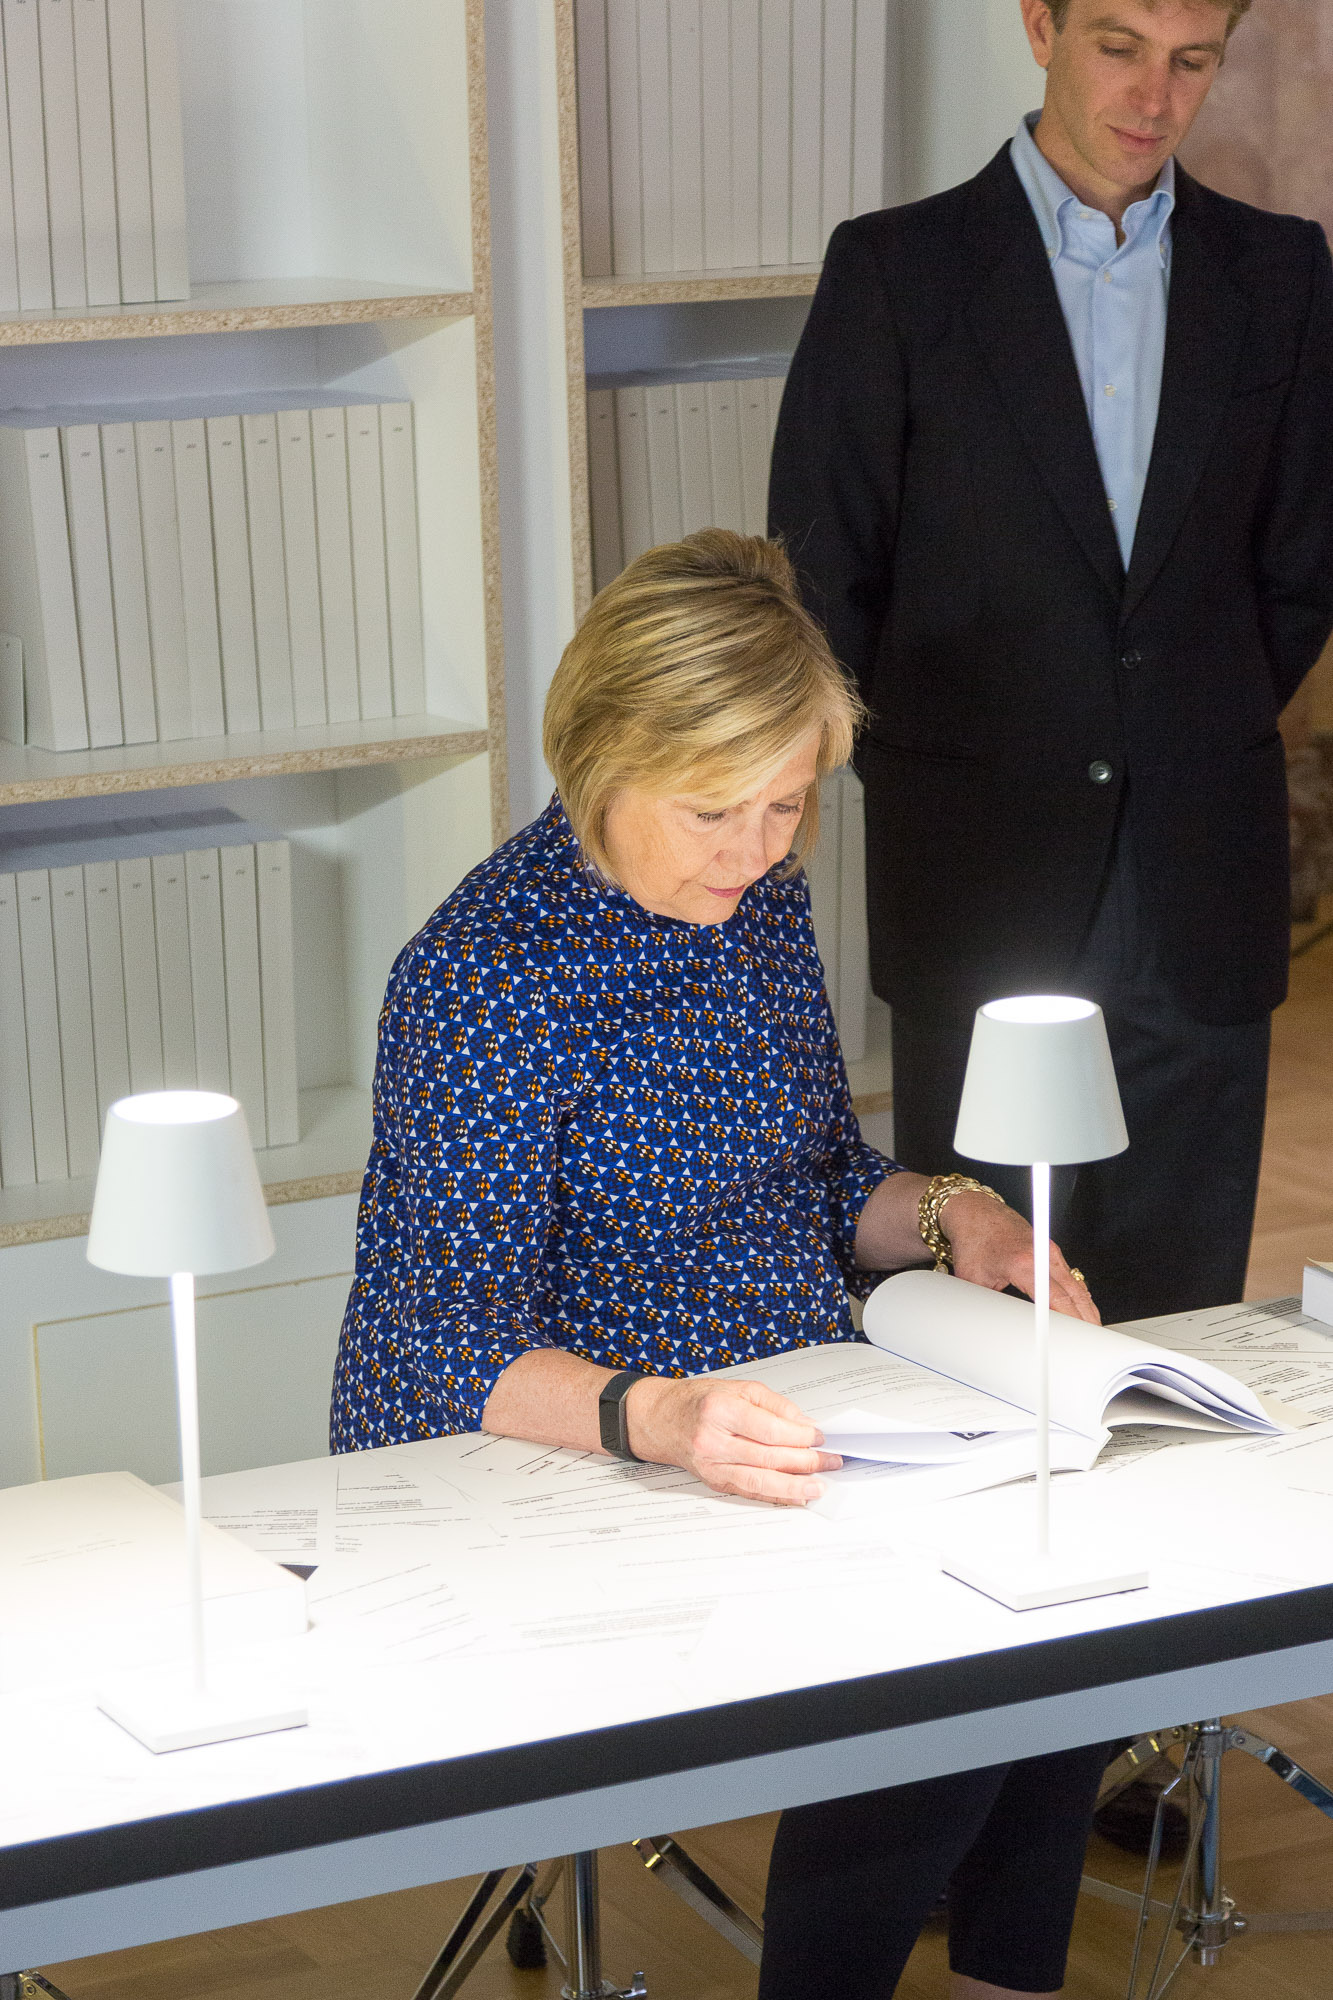 Hillary Clinton Went to a Venice Exhibition Presenting Thousands of Her Own Emails—and She Sat Down and Read Them